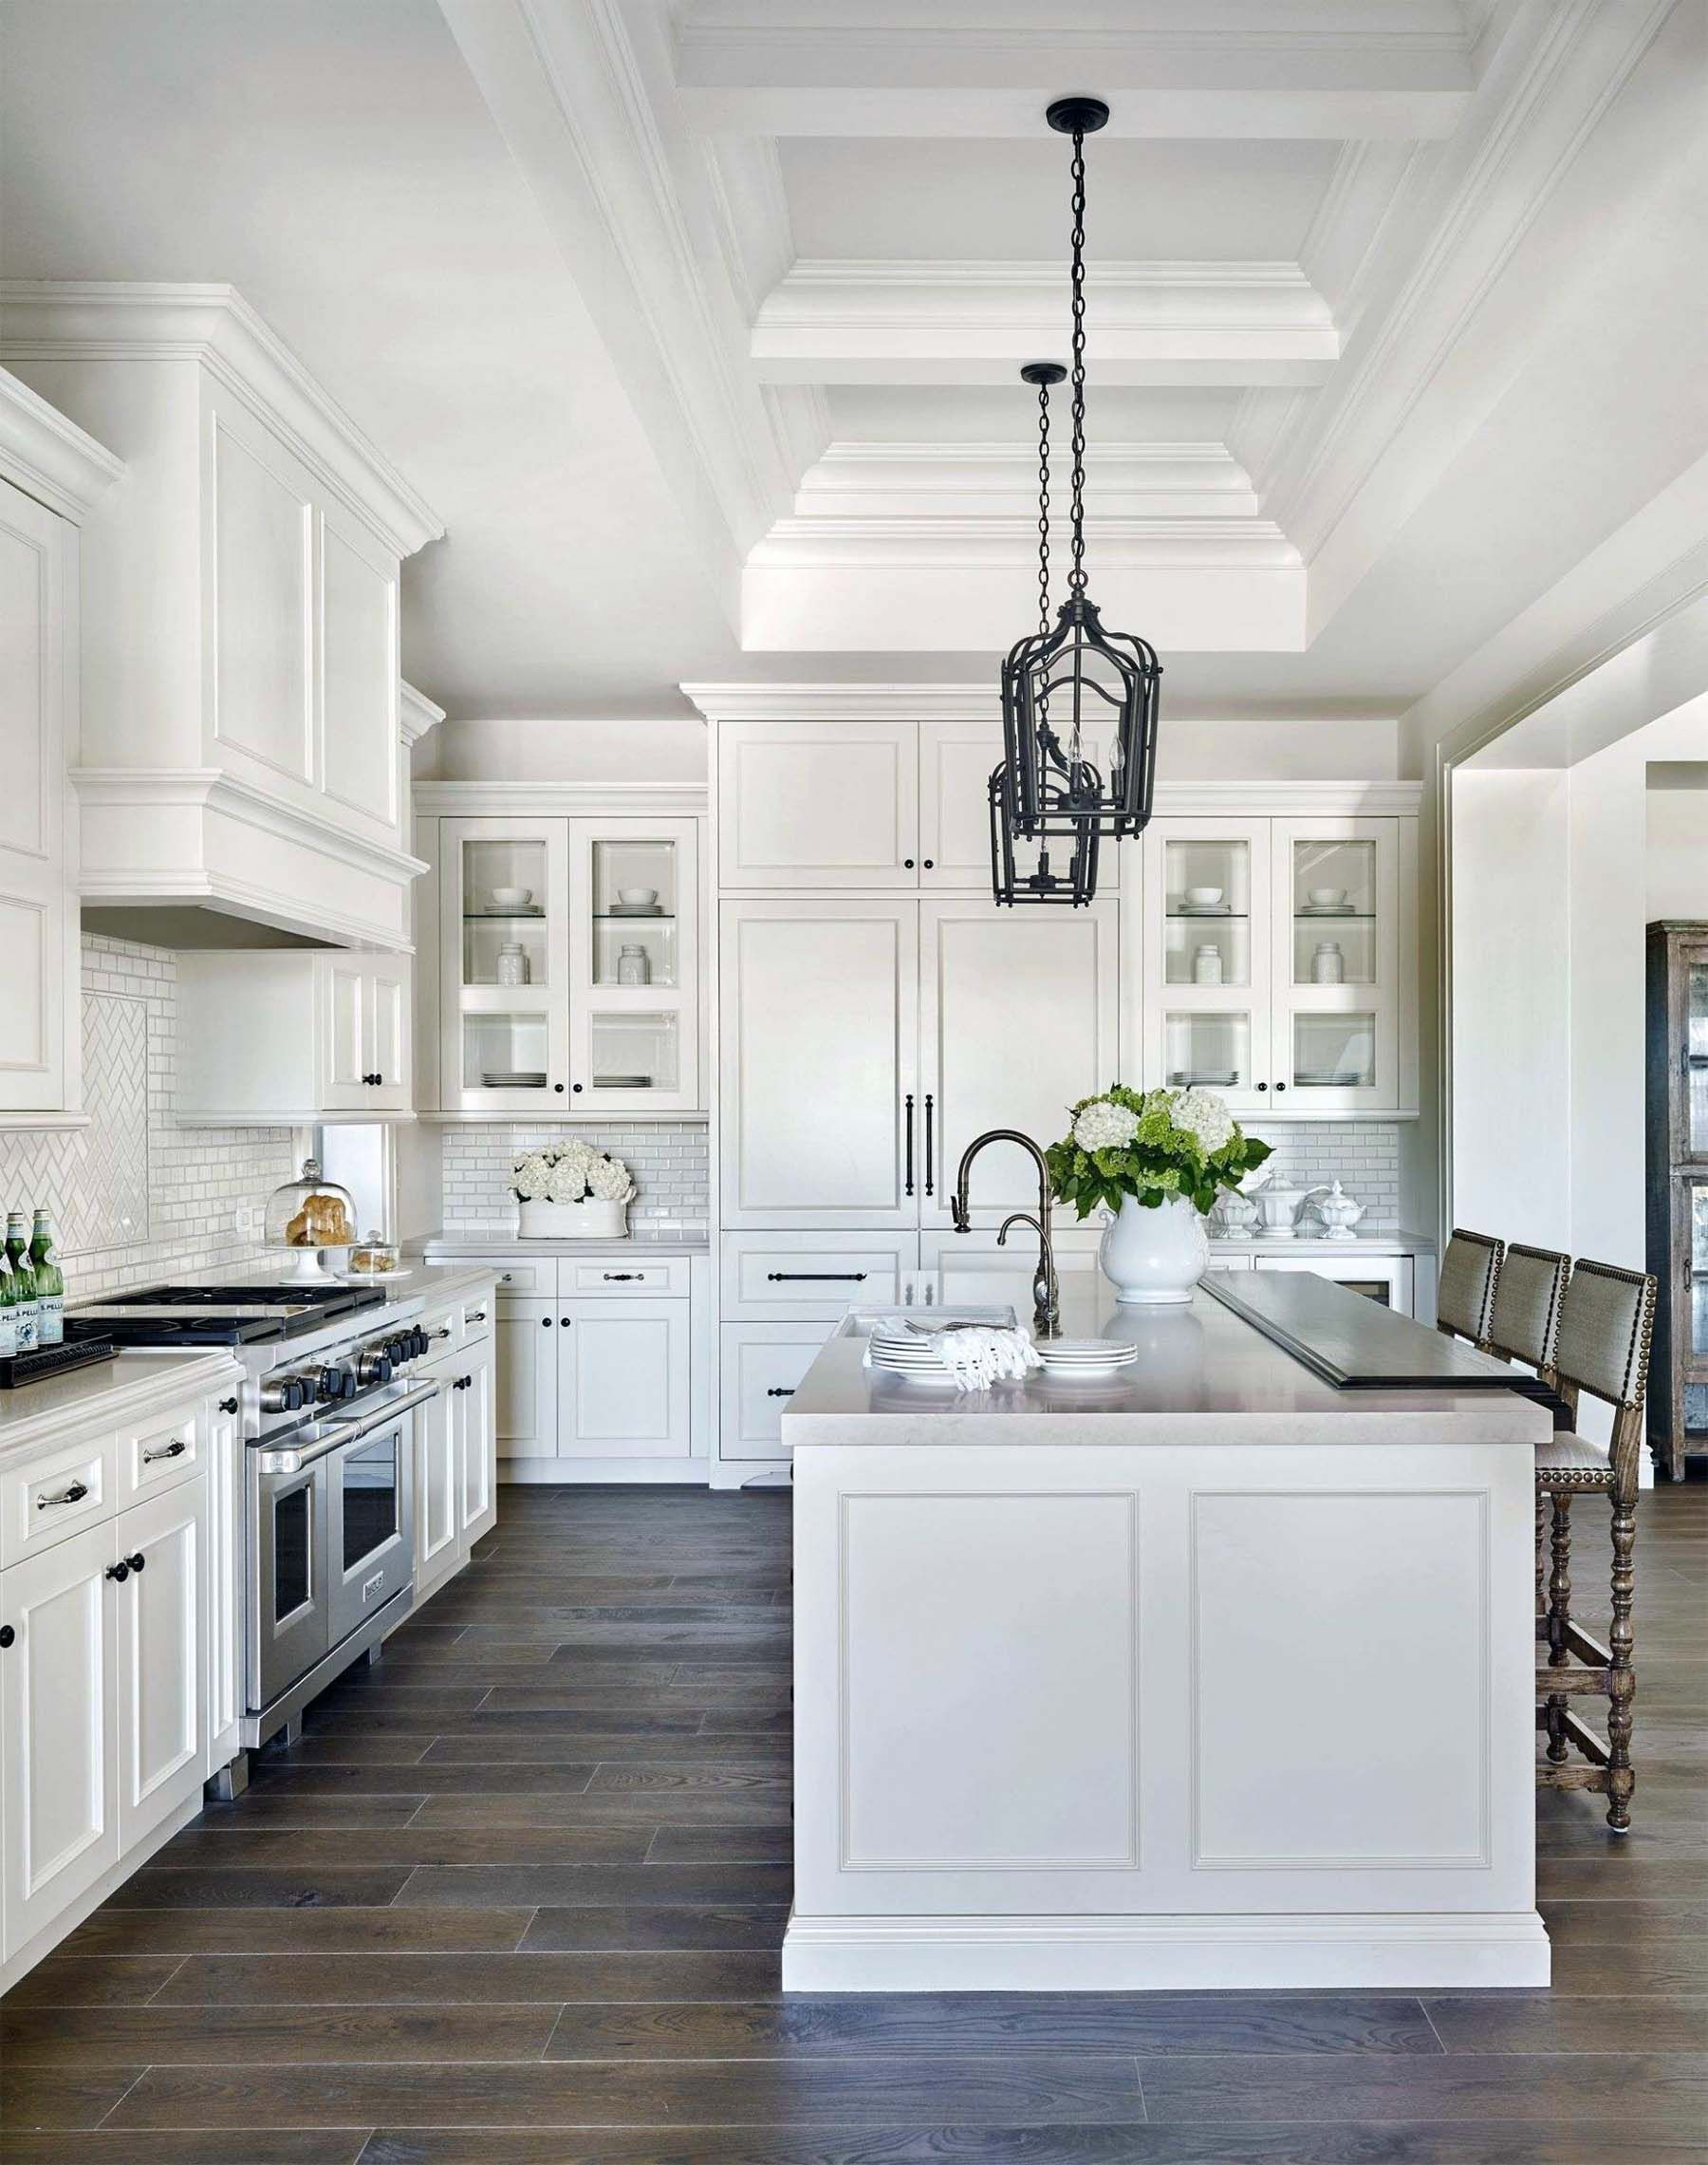 Beautiful Highnend Kitchen With White Cabinets And Coffered Ceiling Farmhouse Kitchen Design Gorgeous White Kitchen White Kitchen Design